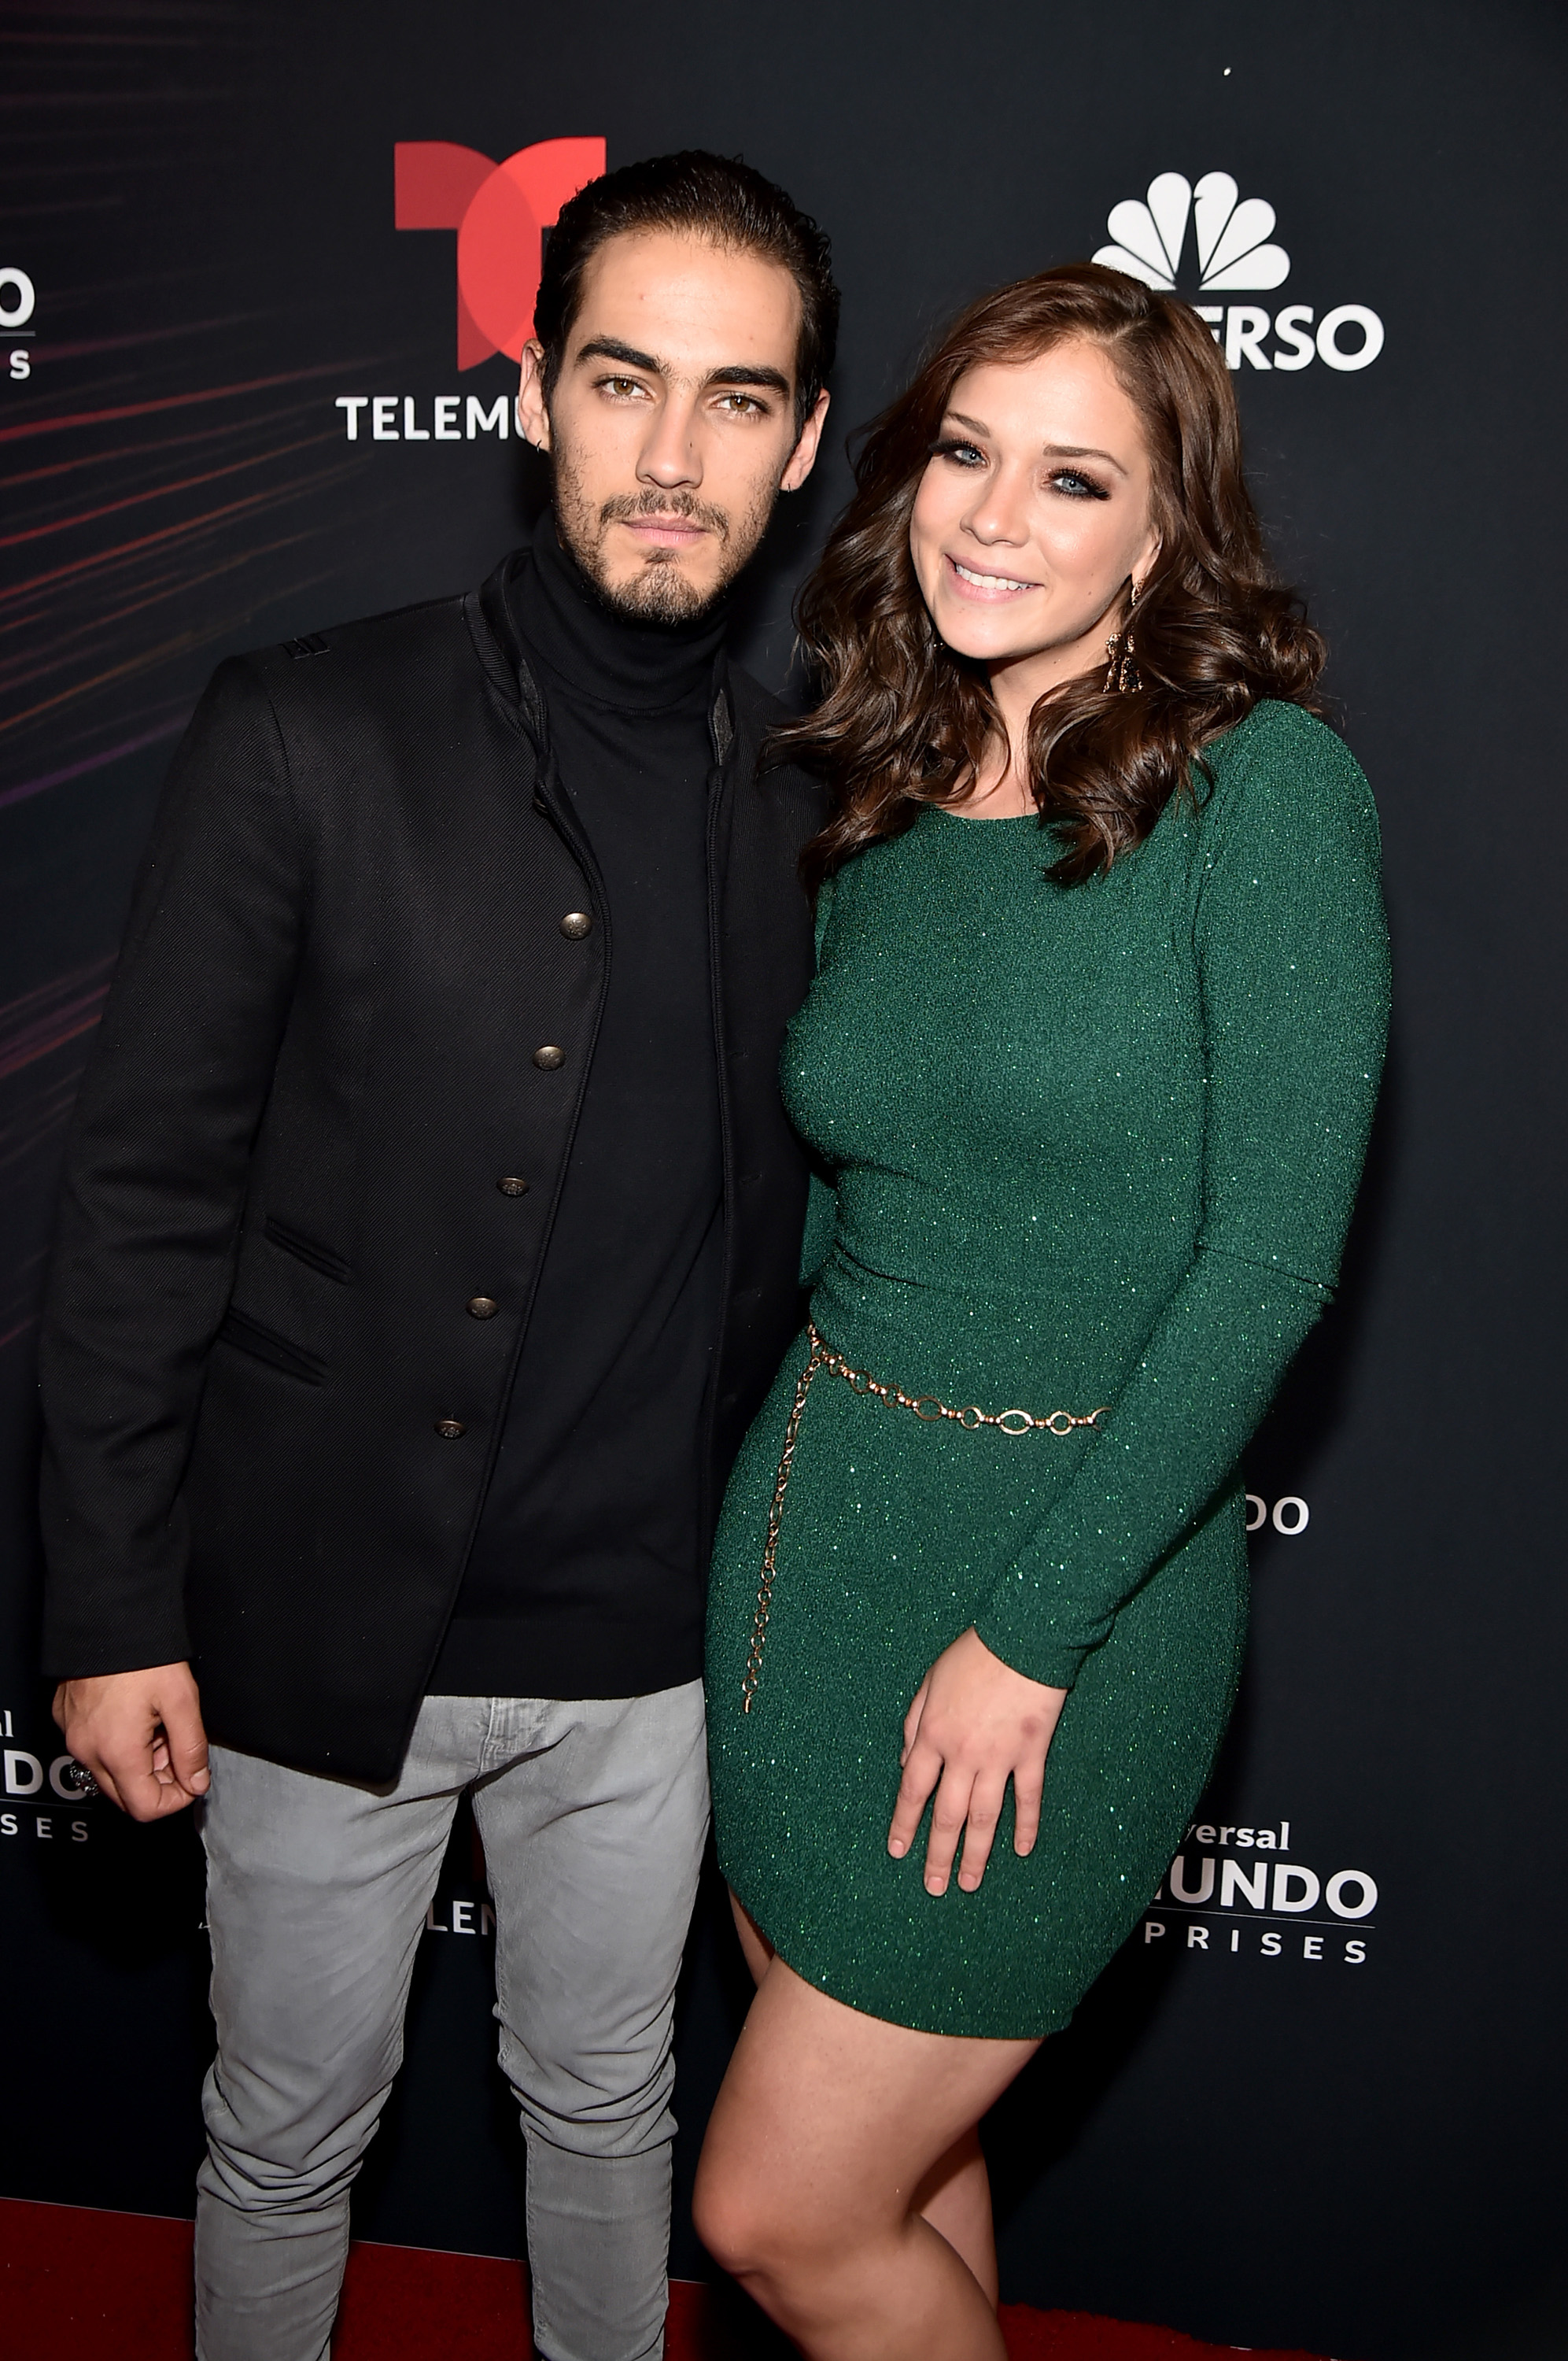 Telemundo Events - Season 2018